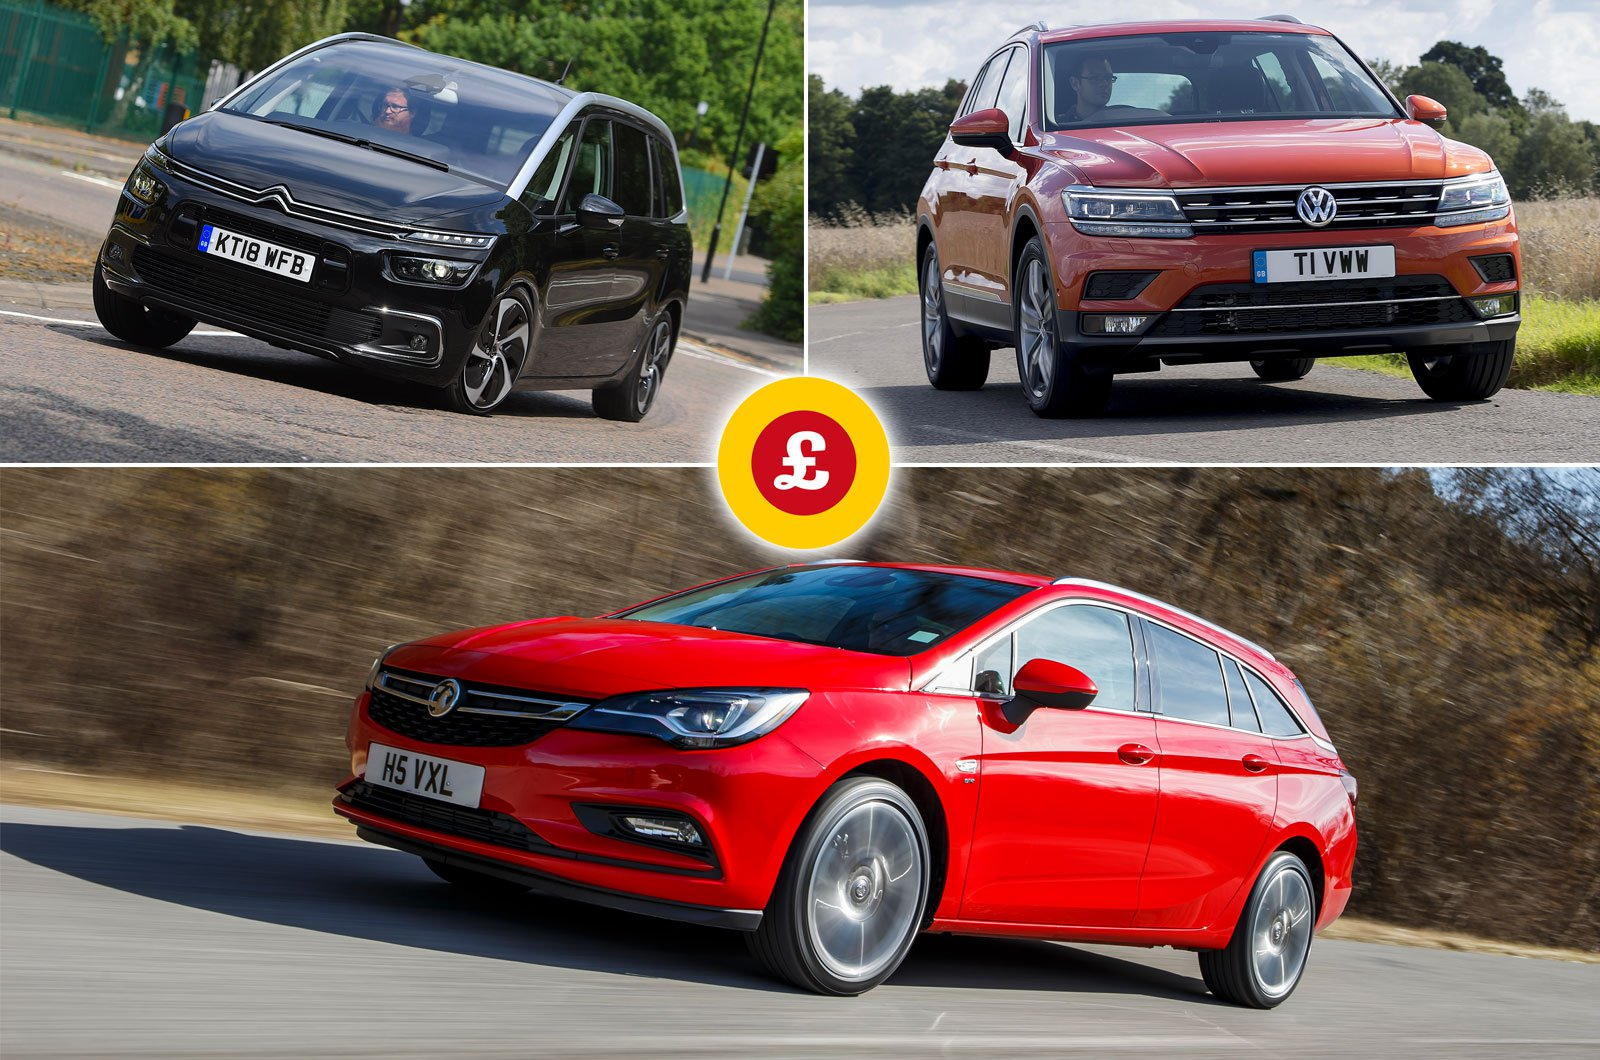 Citroën Grand C4 Spacetourer, Volkswagen Tiguan, Vauxhall Astra Sports Tourer